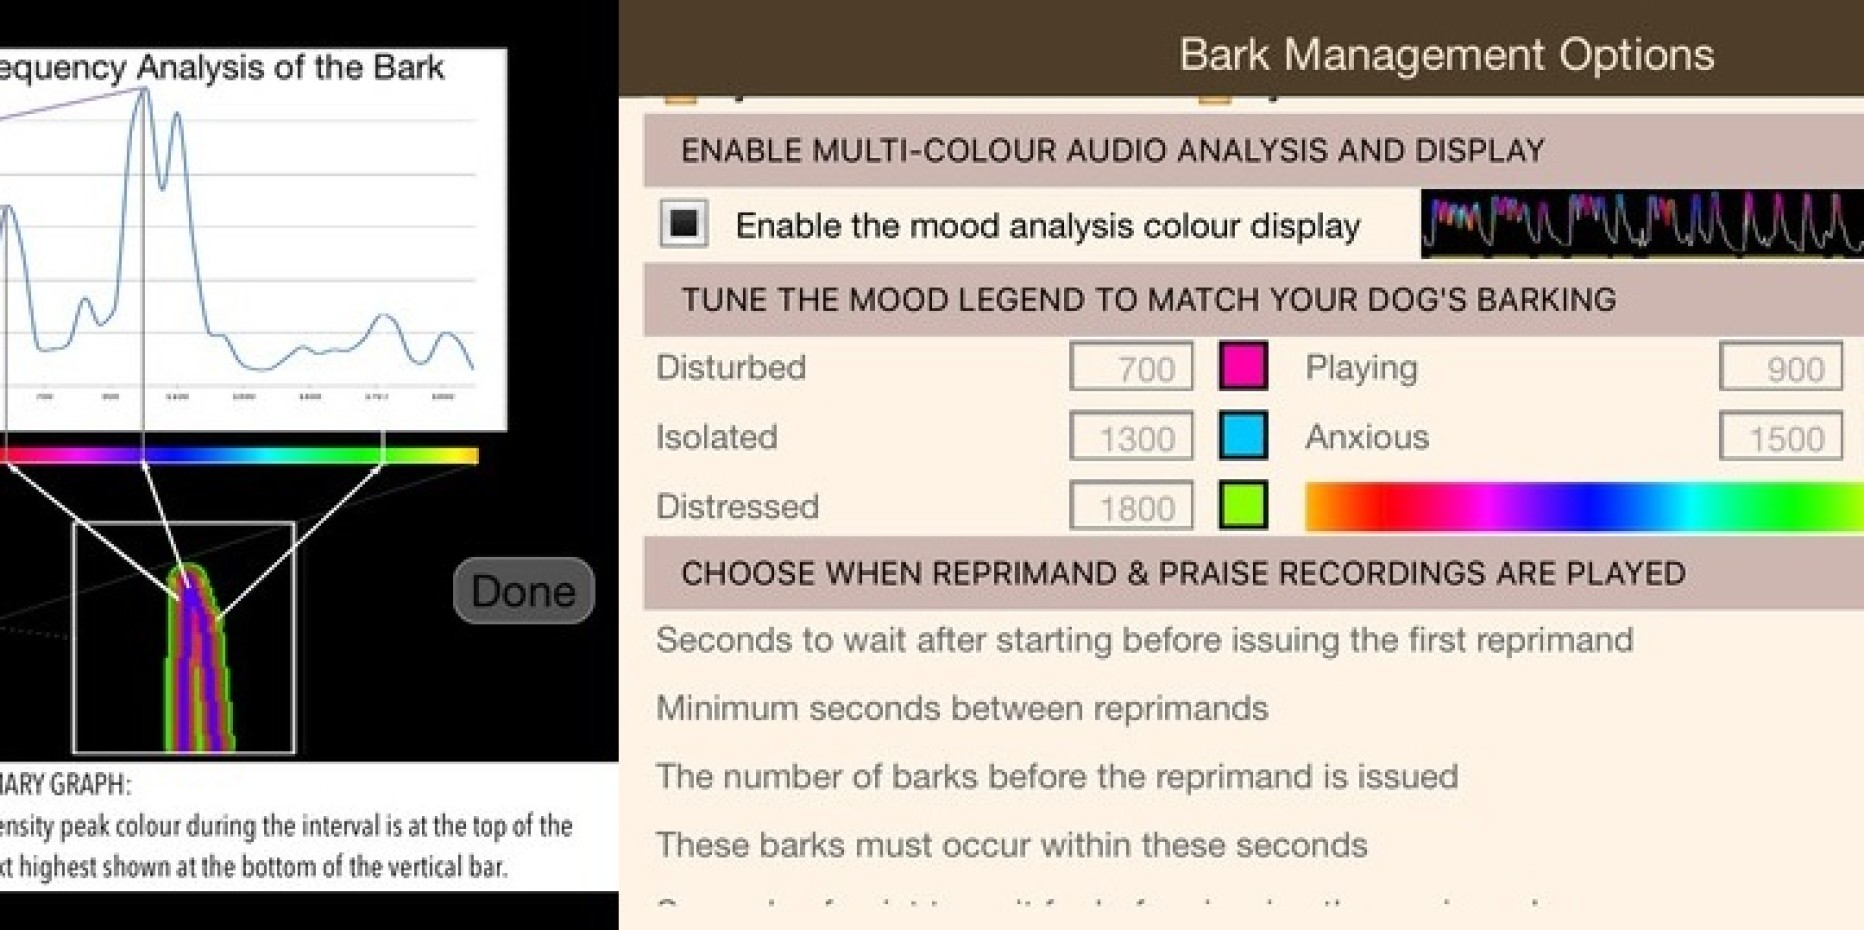 Monitor Your Dogs and the Neighbor's with Bark'n Mad